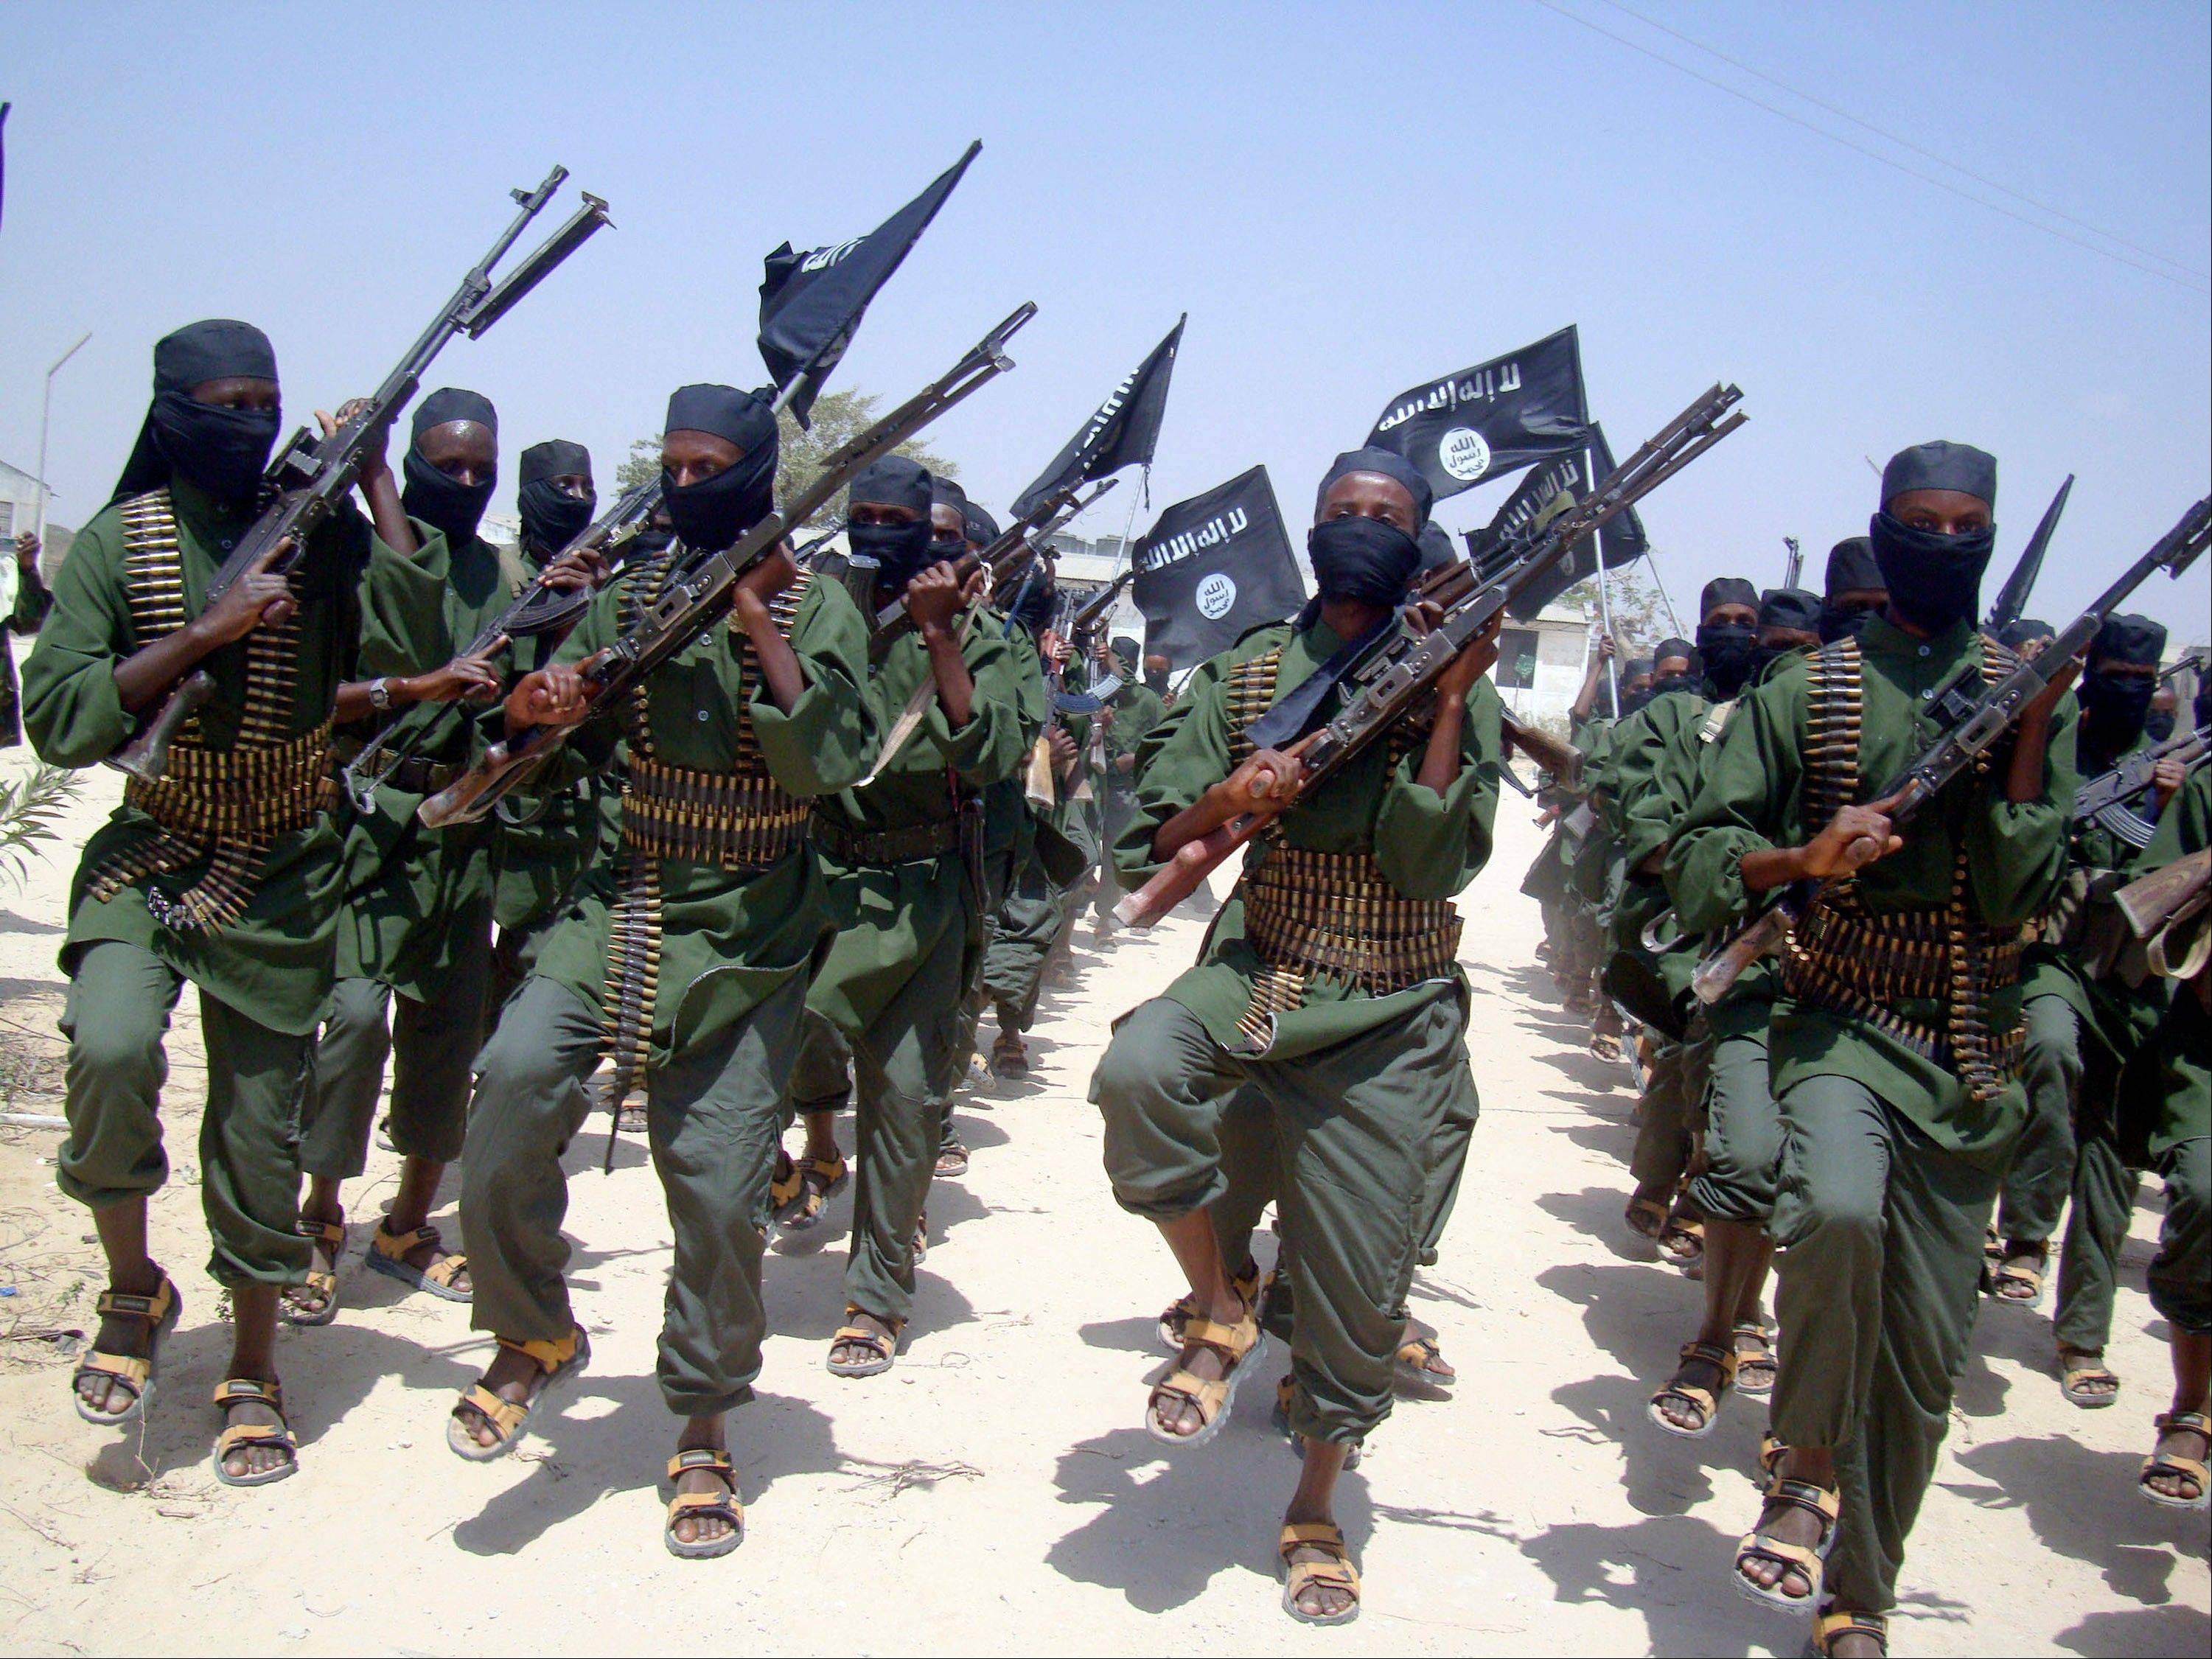 In this Thursday, Feb. 17, 2011 photo, al-Shabab fighters march with their weapons during military exercises on the outskirts of Mogadishu, Somalia. Foreign military forces carried out a pre-dawn strike Saturday, Oct. 5, against foreign fighters in the same southern Somalia village where U.S. Navy SEALS four years ago killed a most-wanted al-Qaida operative, officials said.